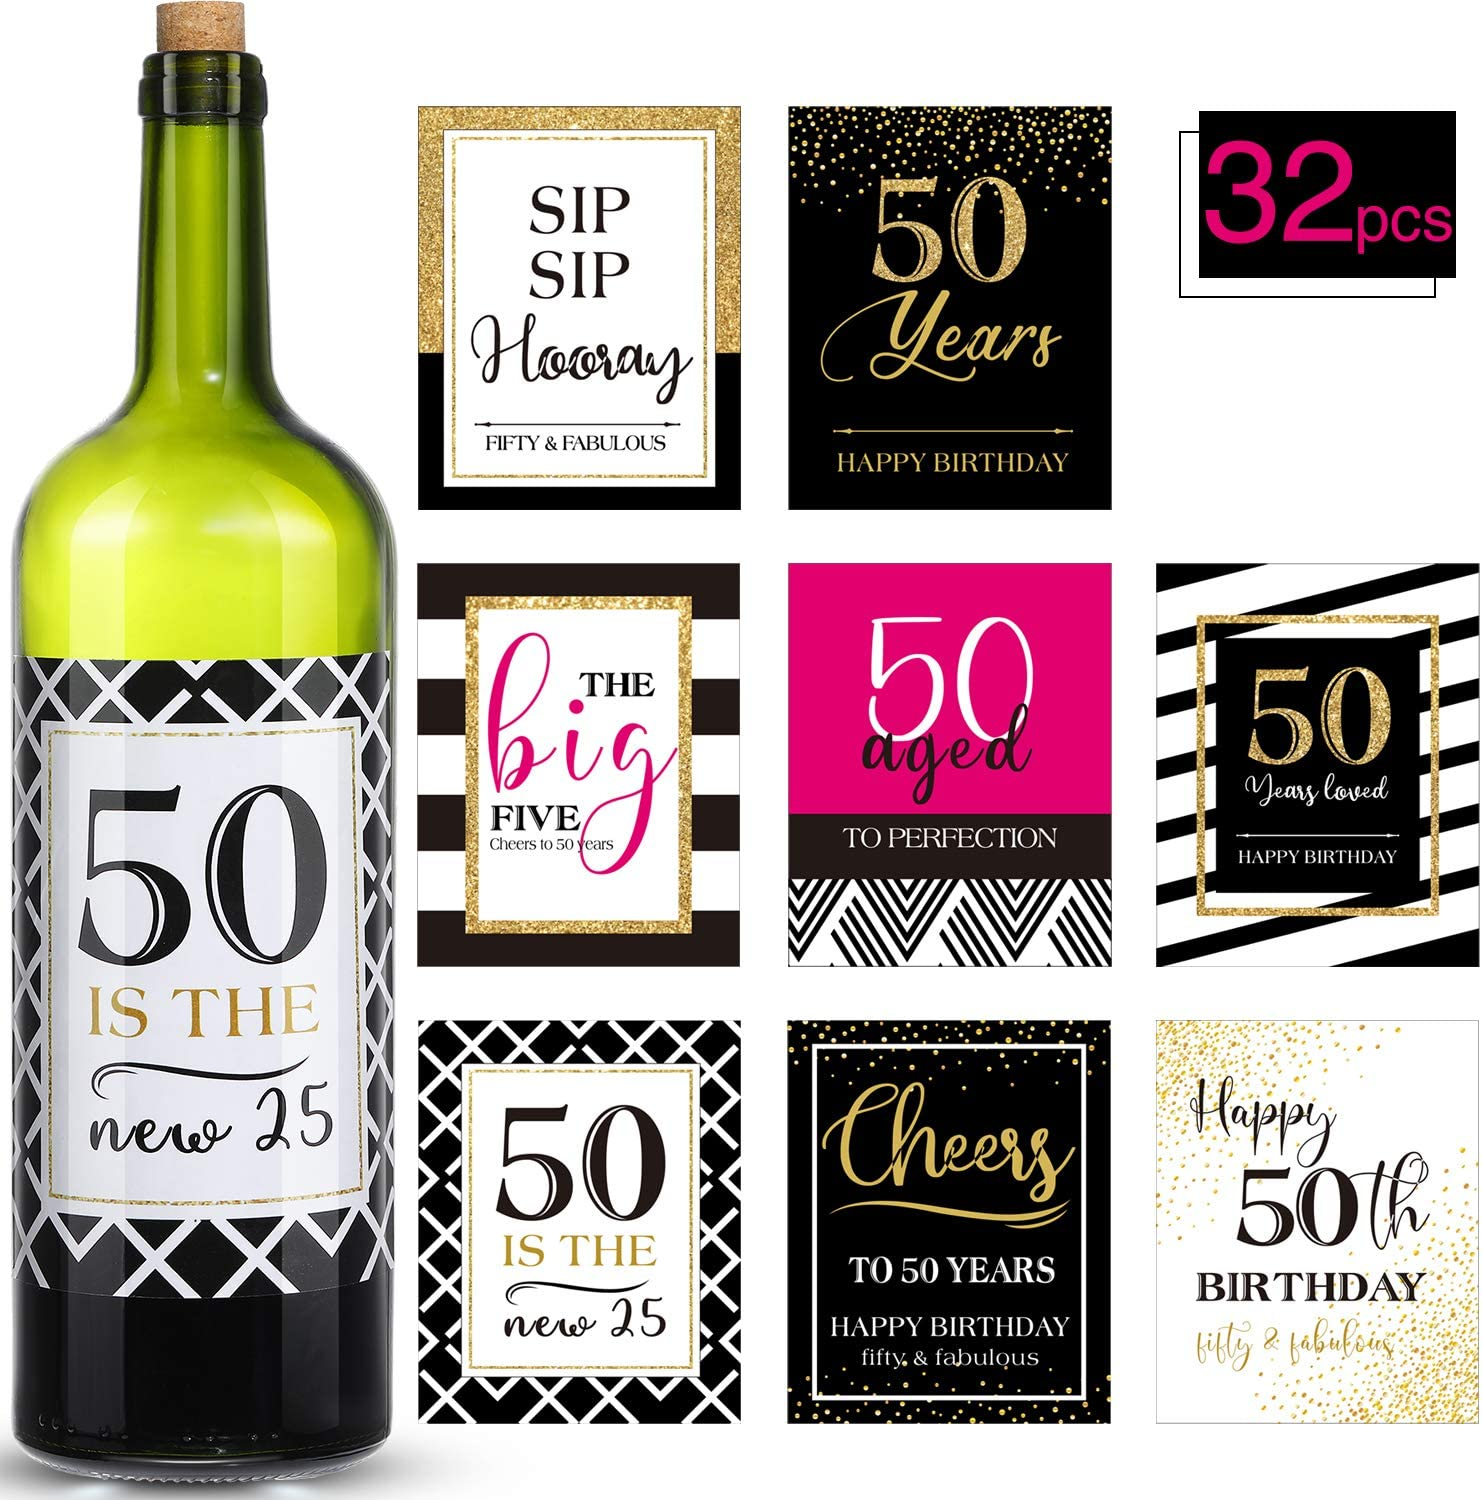 32 Pieces 50th Birthday Party Wine or Beer Bottle Labels Stickers 50th Birthday Decor for 50th Birthday Party Supplies